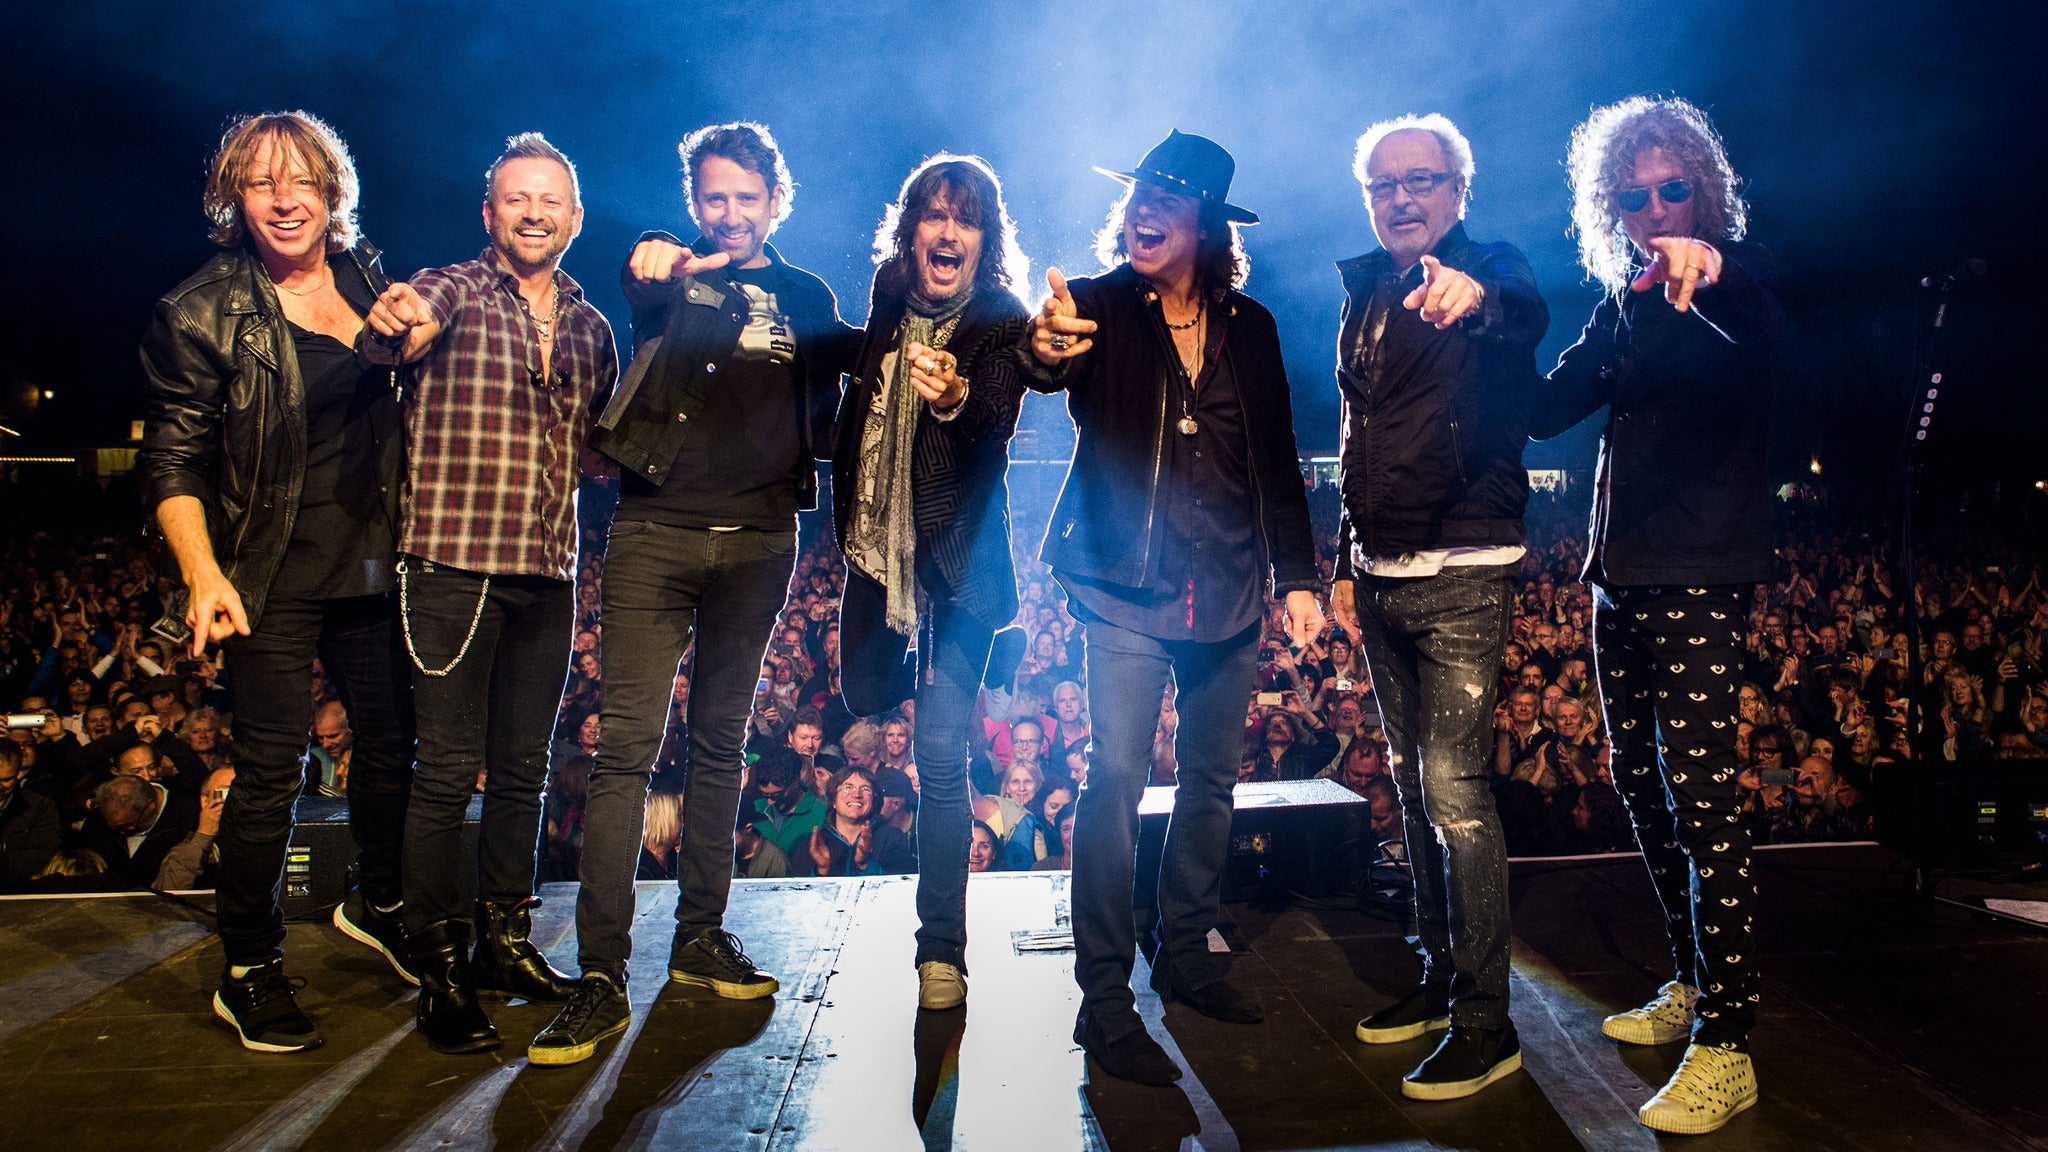 Foreigner: Juke Box Hero Tour 2020 at Shoreline Amphitheatre